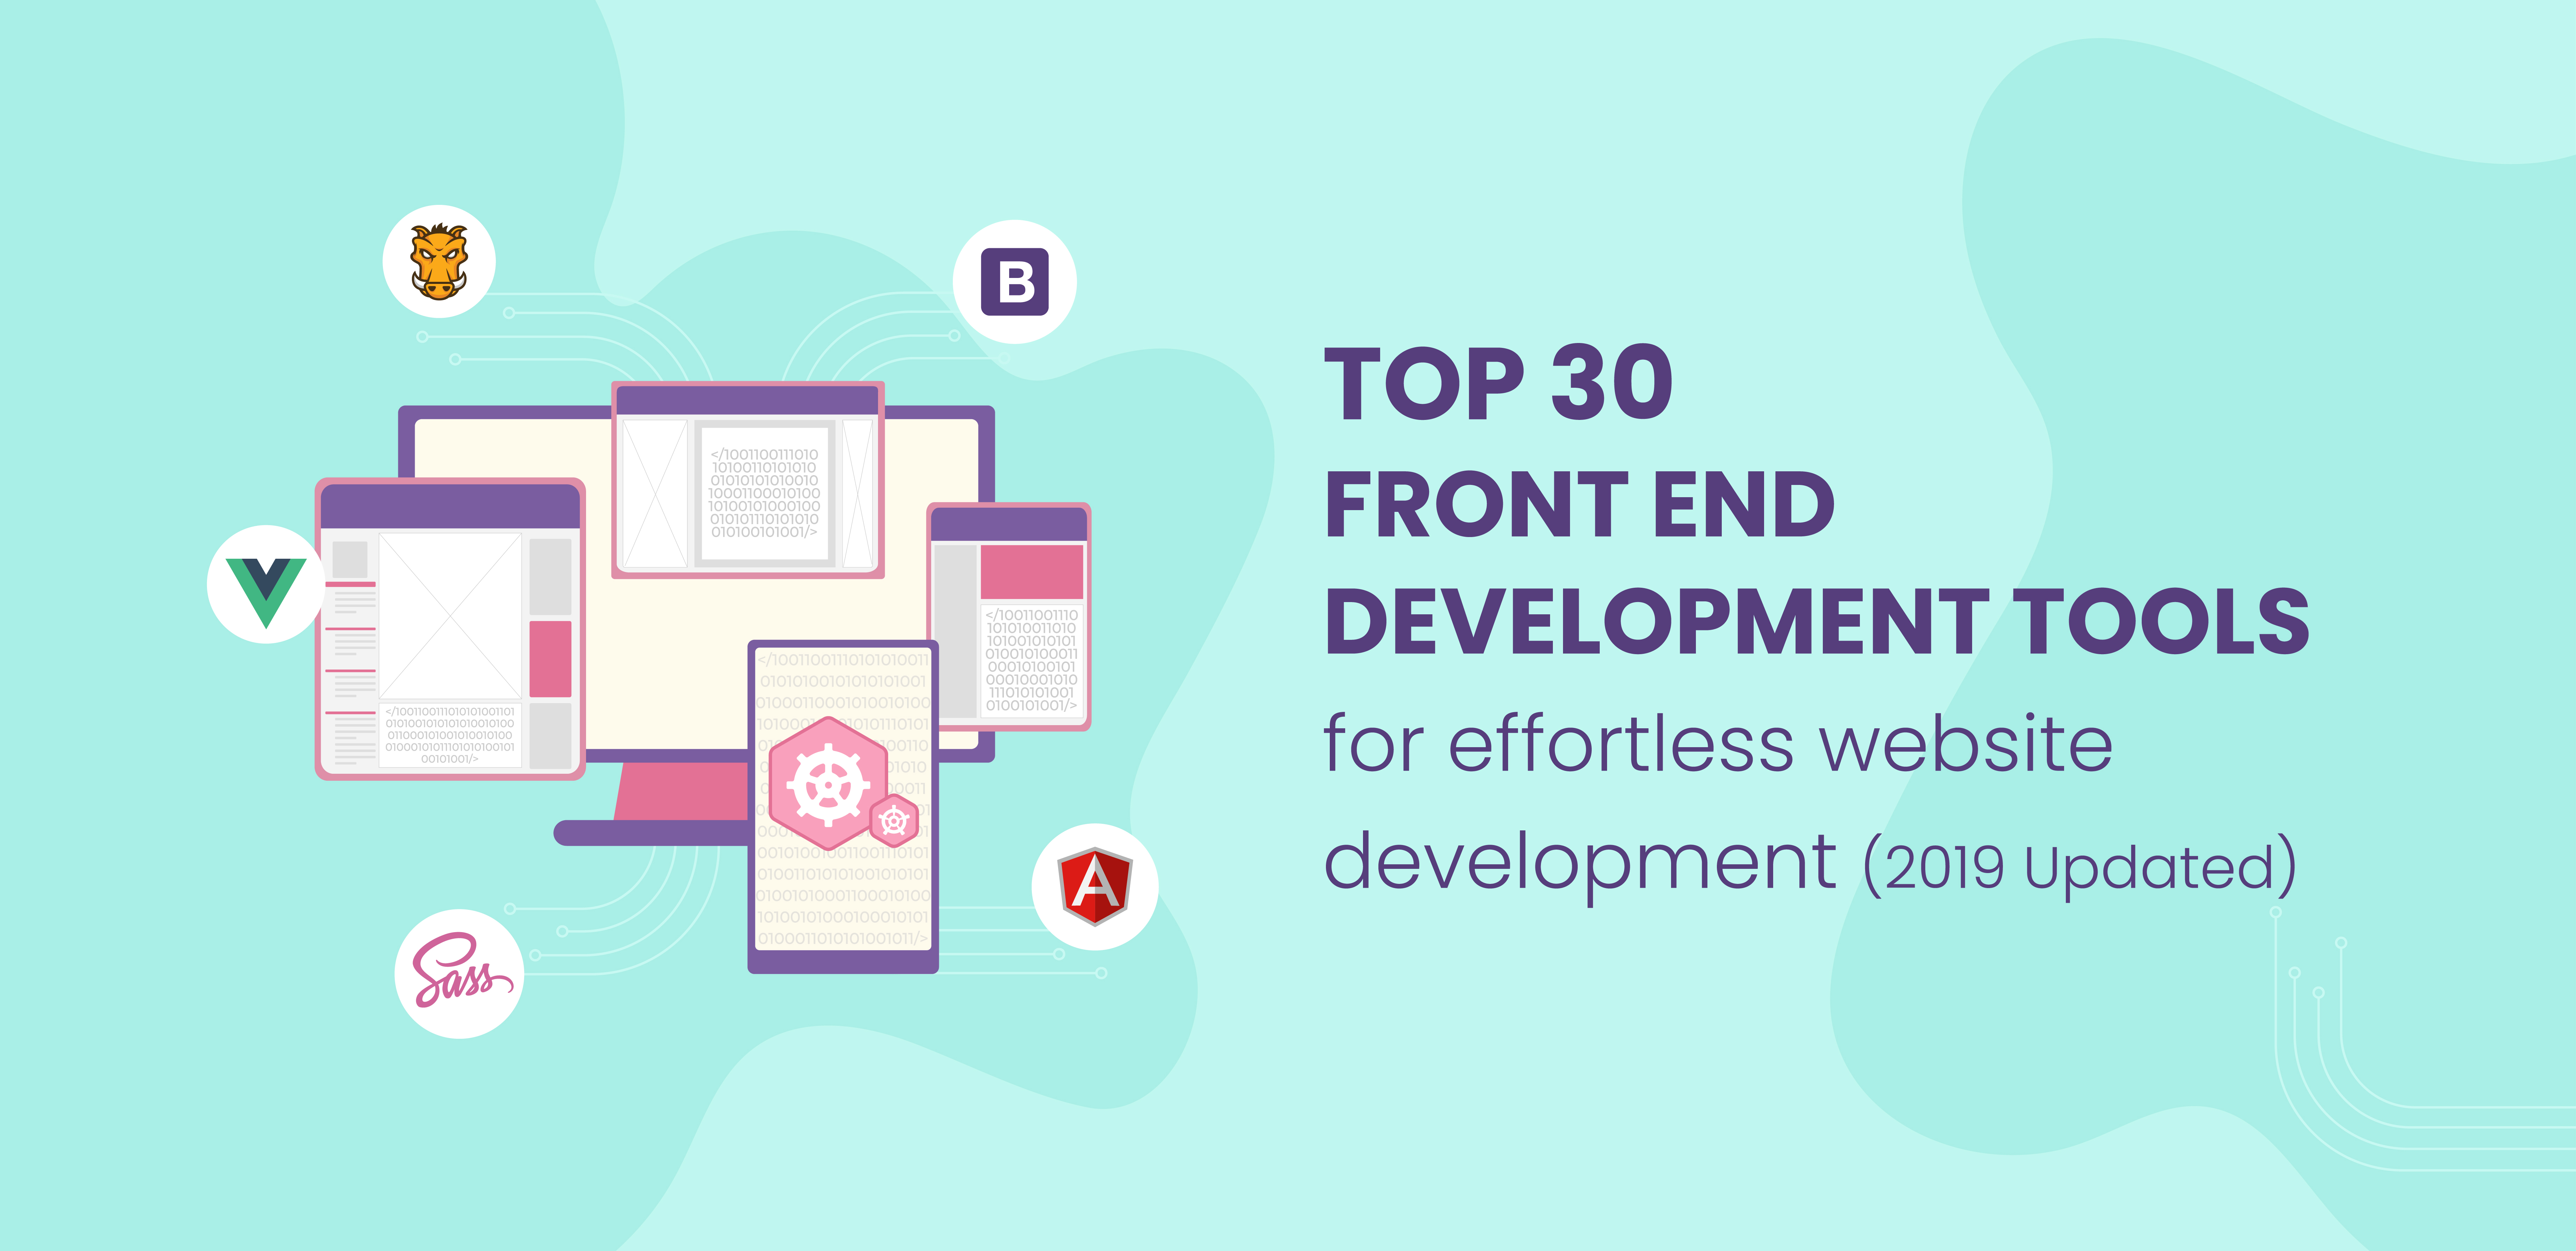 Top 30 front end development tools - 2019 updated